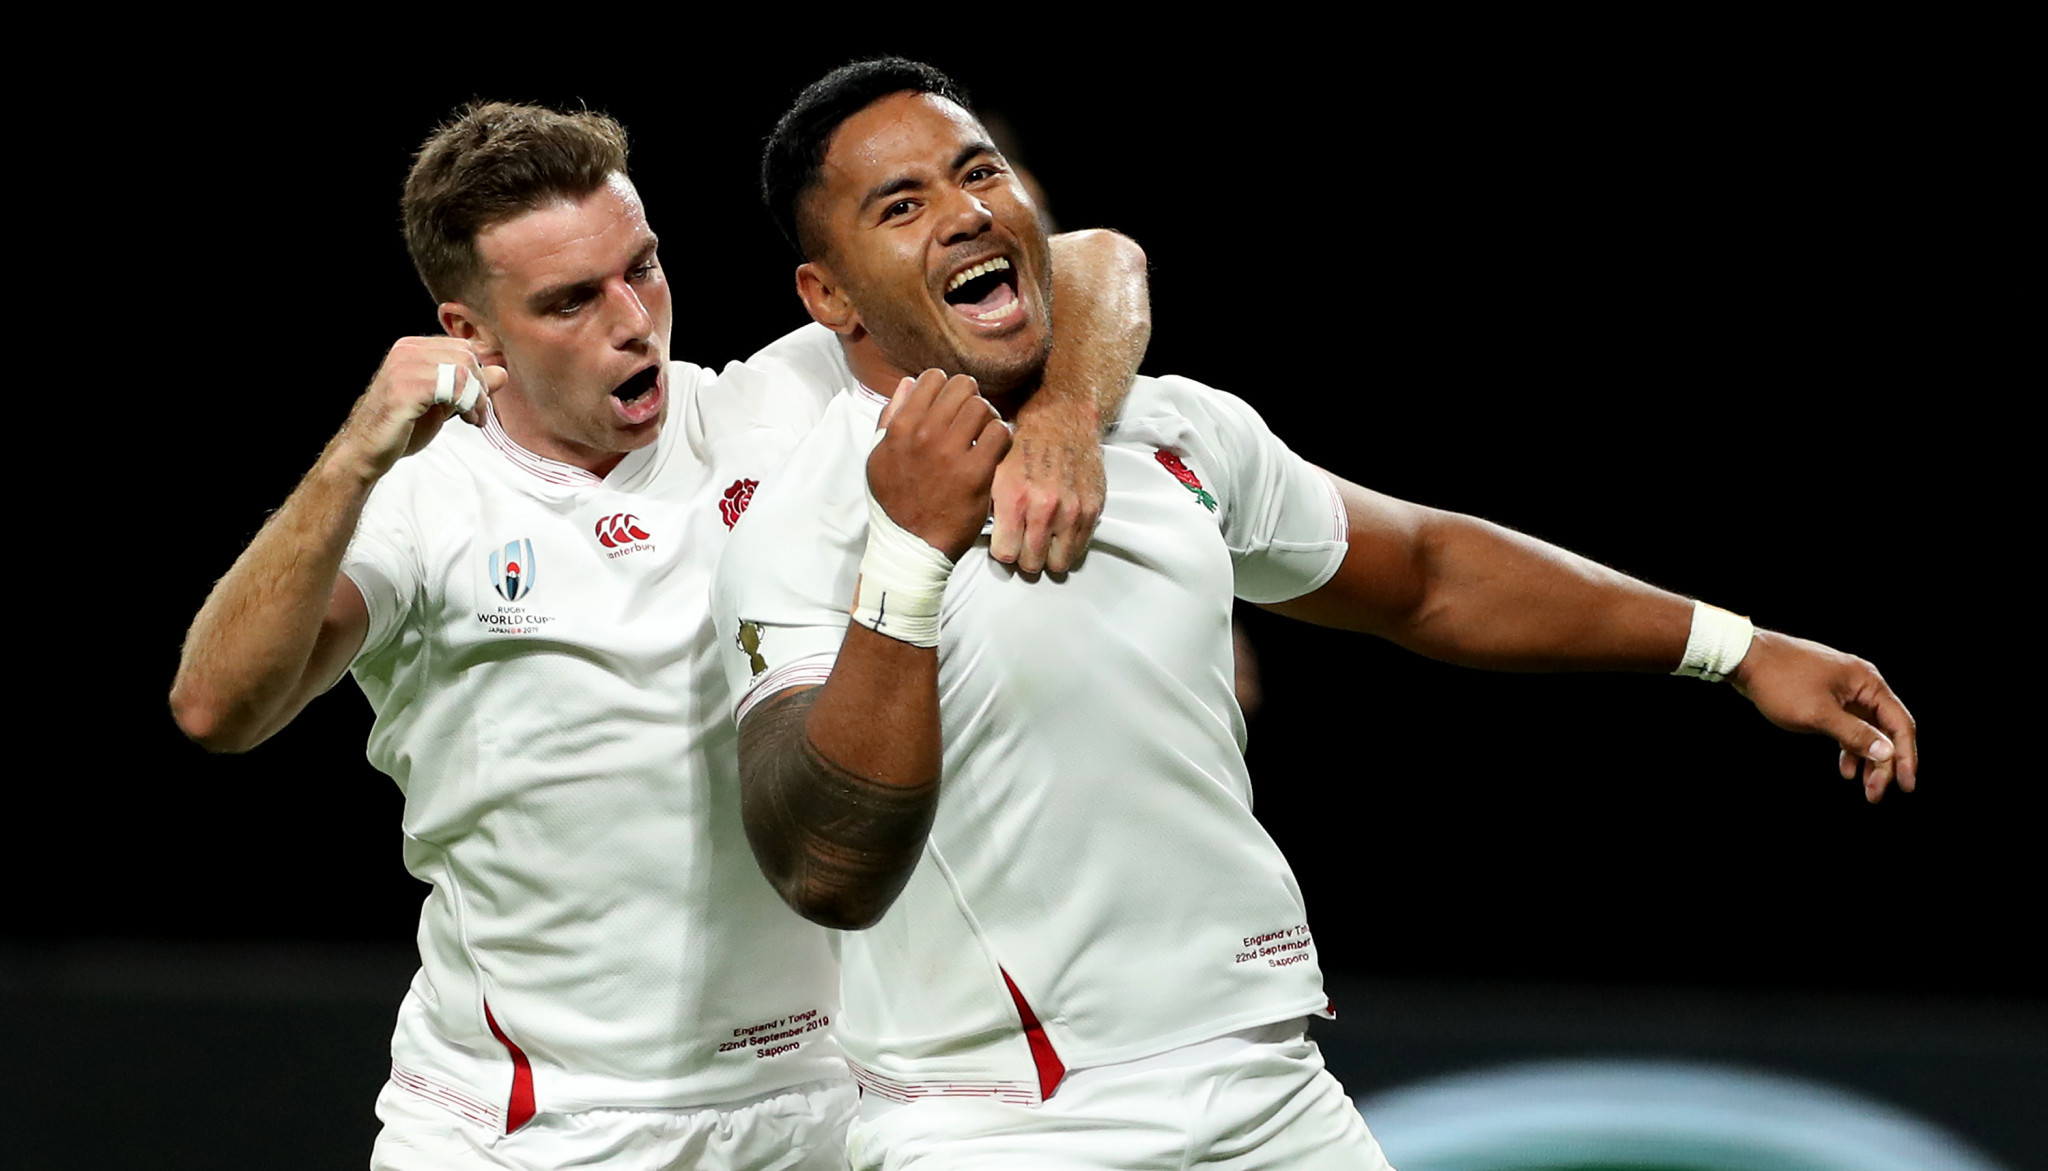 Manu Tuilagi, right, scored a pair of first half tries for England as they beat Tonga ©Getty Images